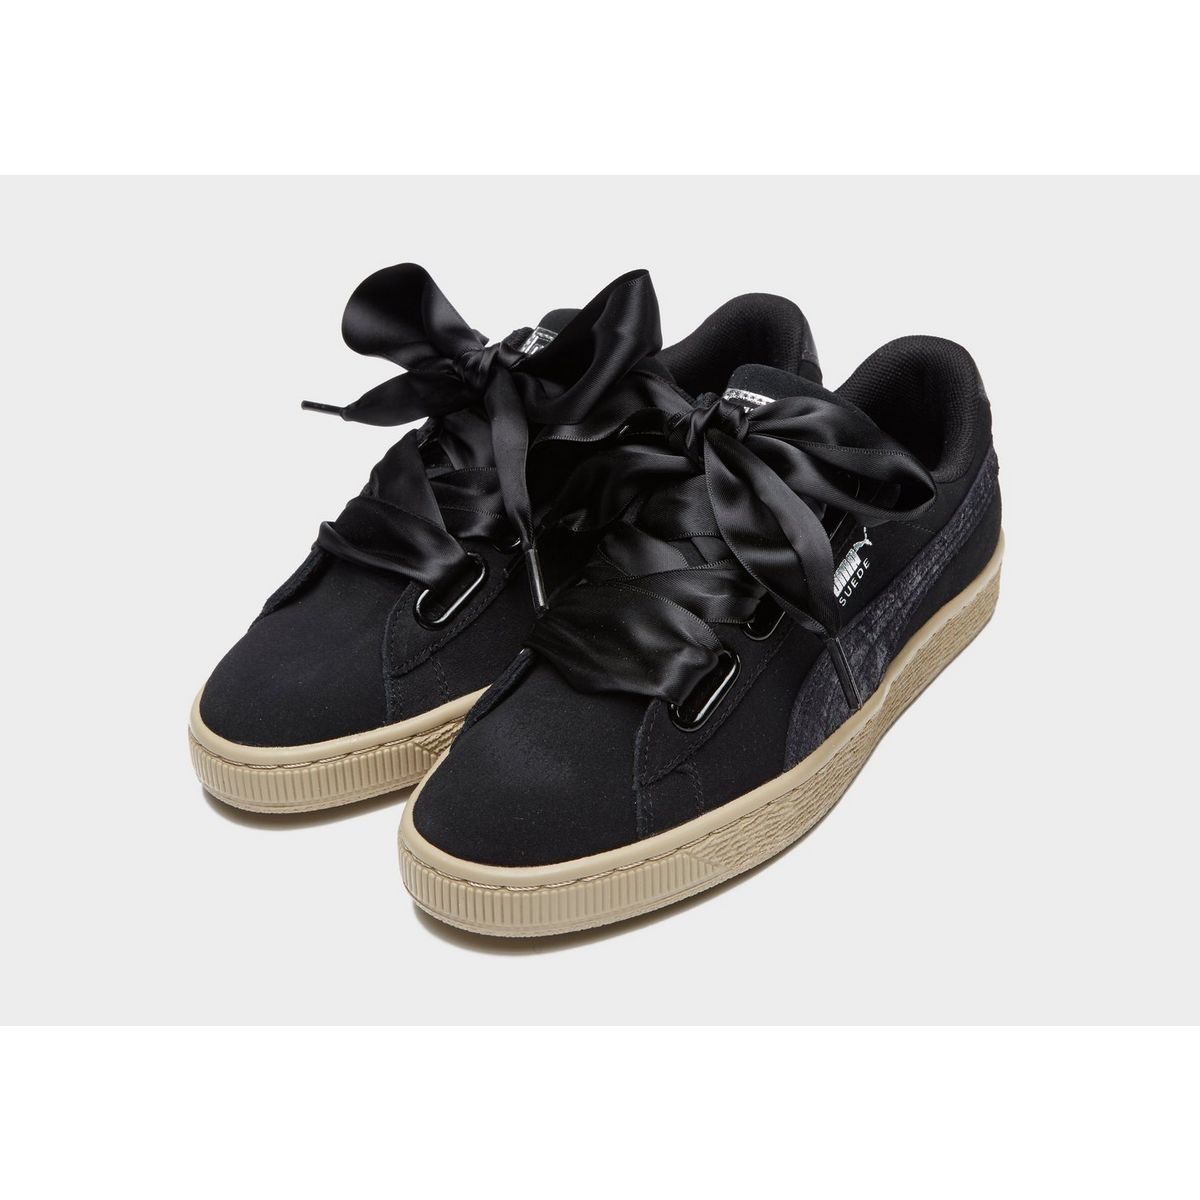 official photos 2f591 73d70 PUMA Suede Heart Women's in 2019 | Boxing Day shopping 2K18 ...